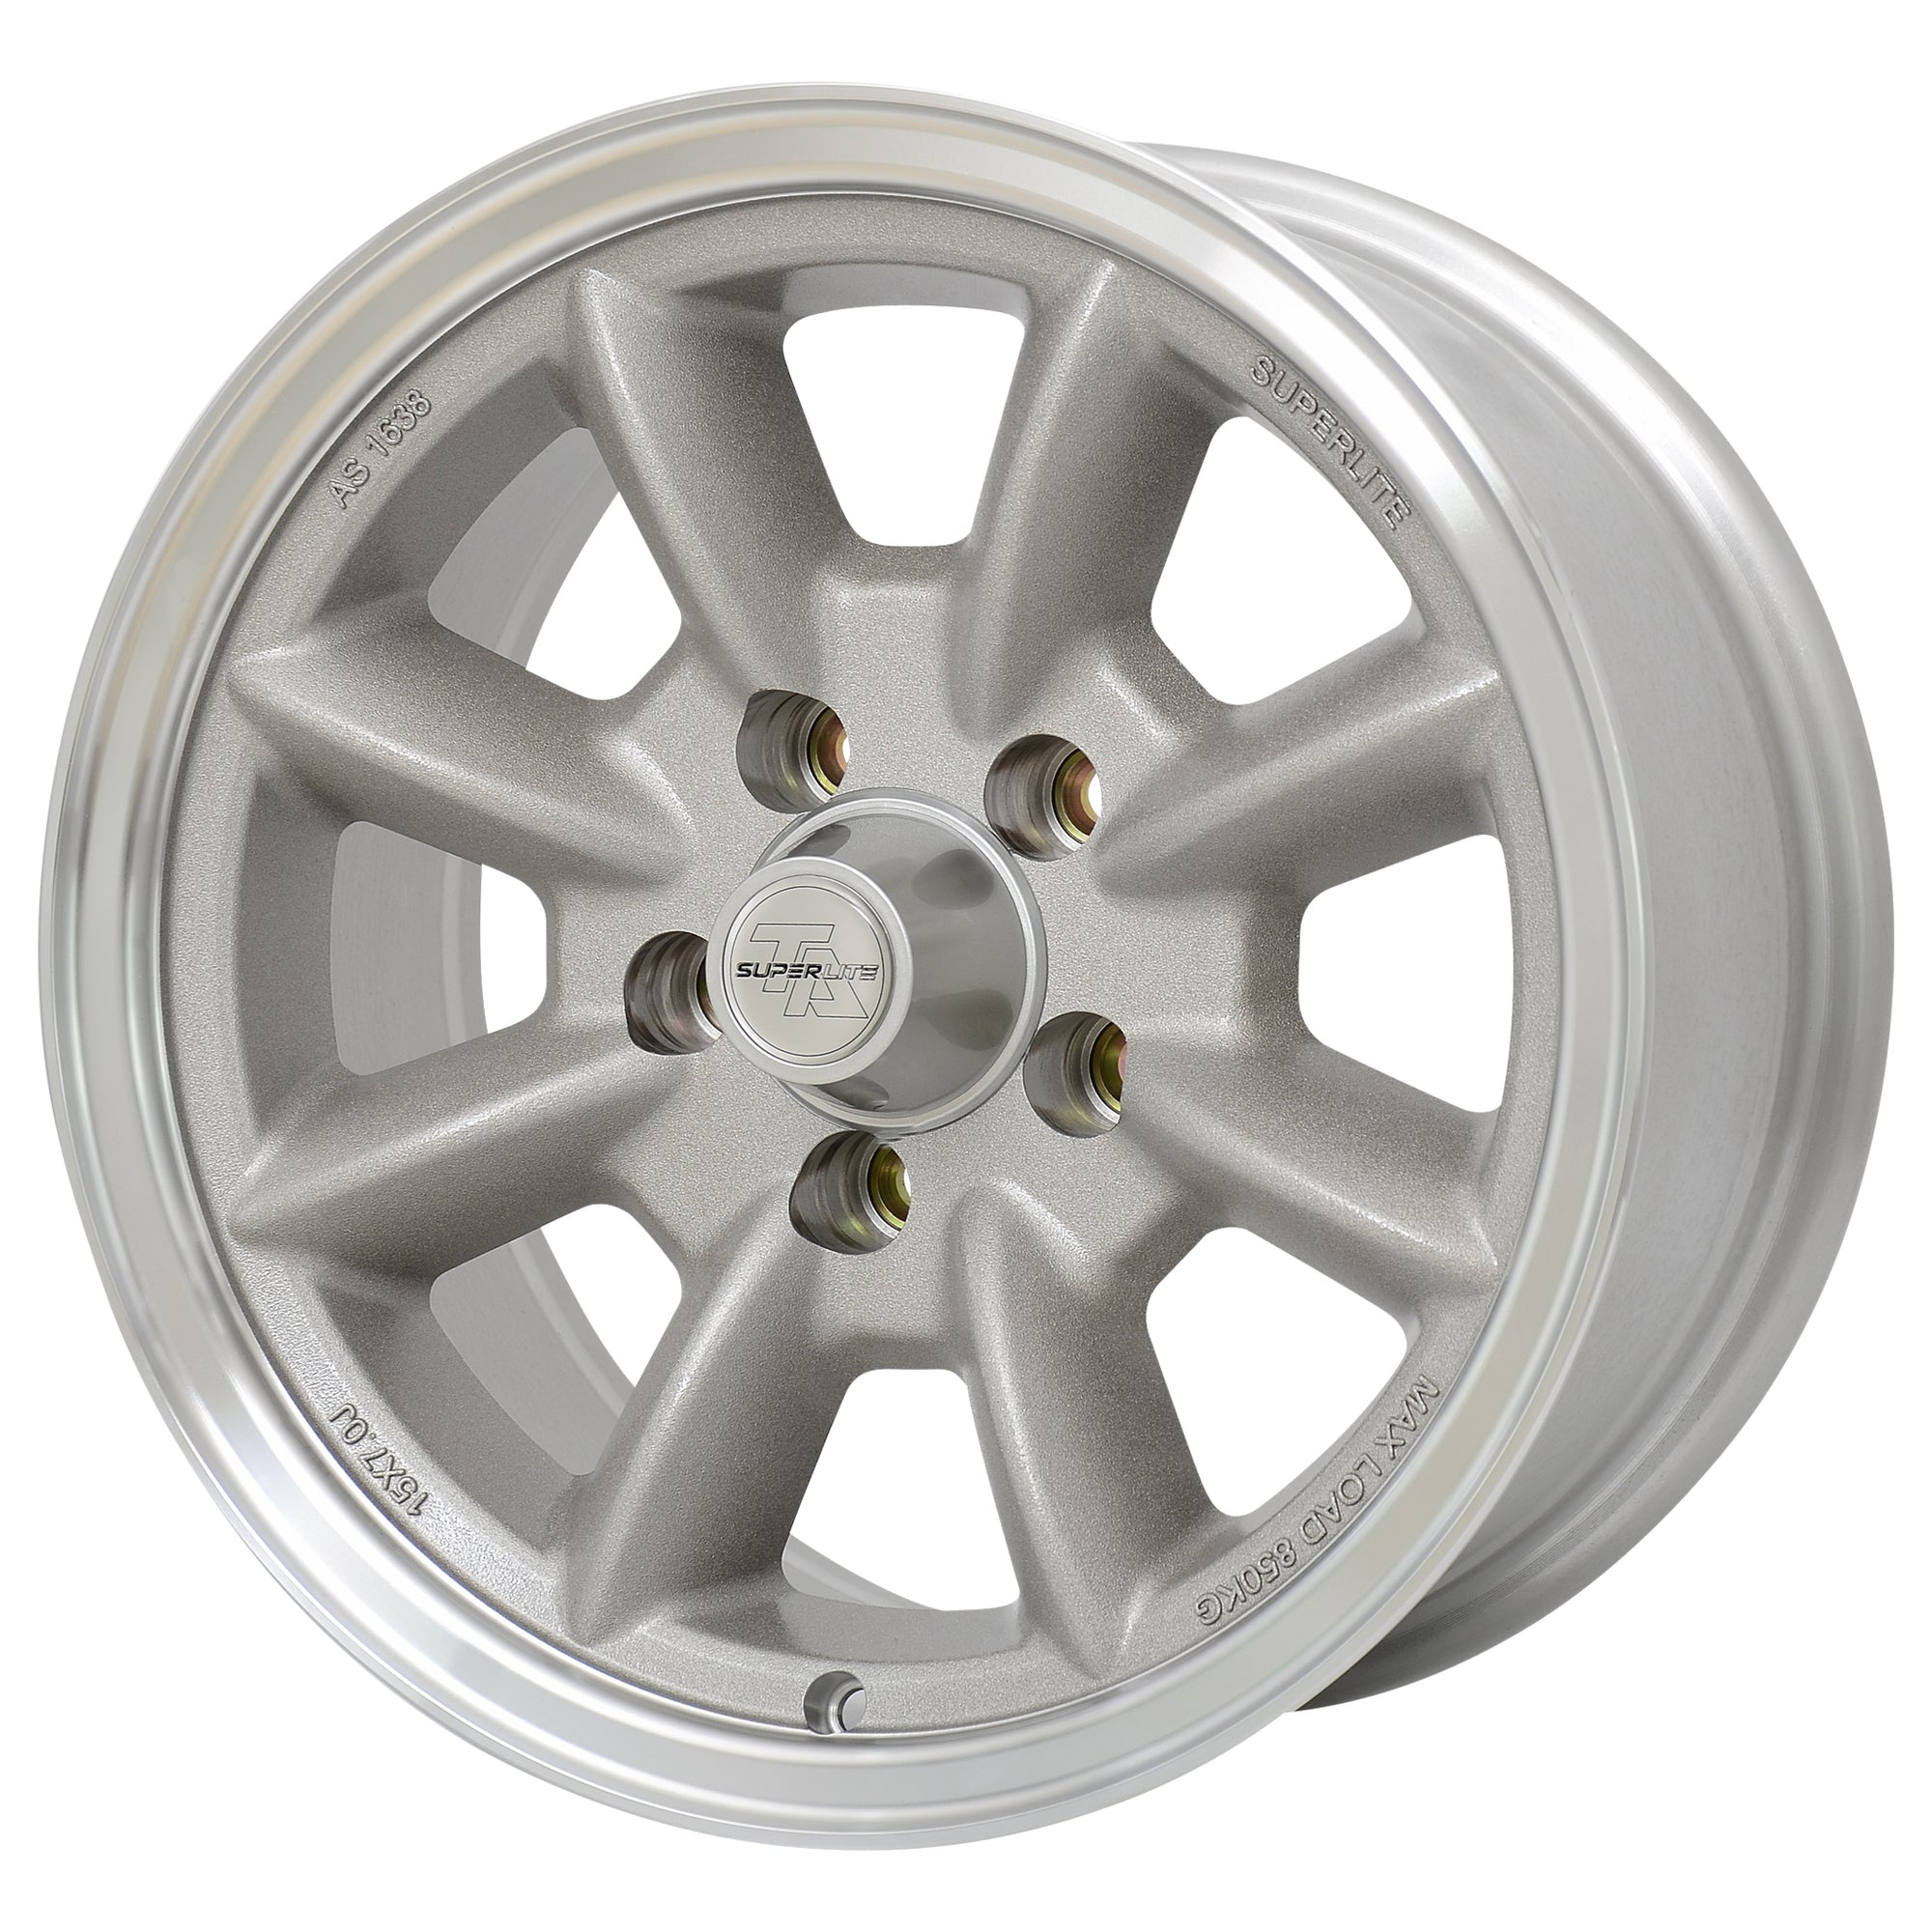 "Superlite 15x7 5x114.3 4.5"" Backspacing 73mm Centre Bore SPL157145"